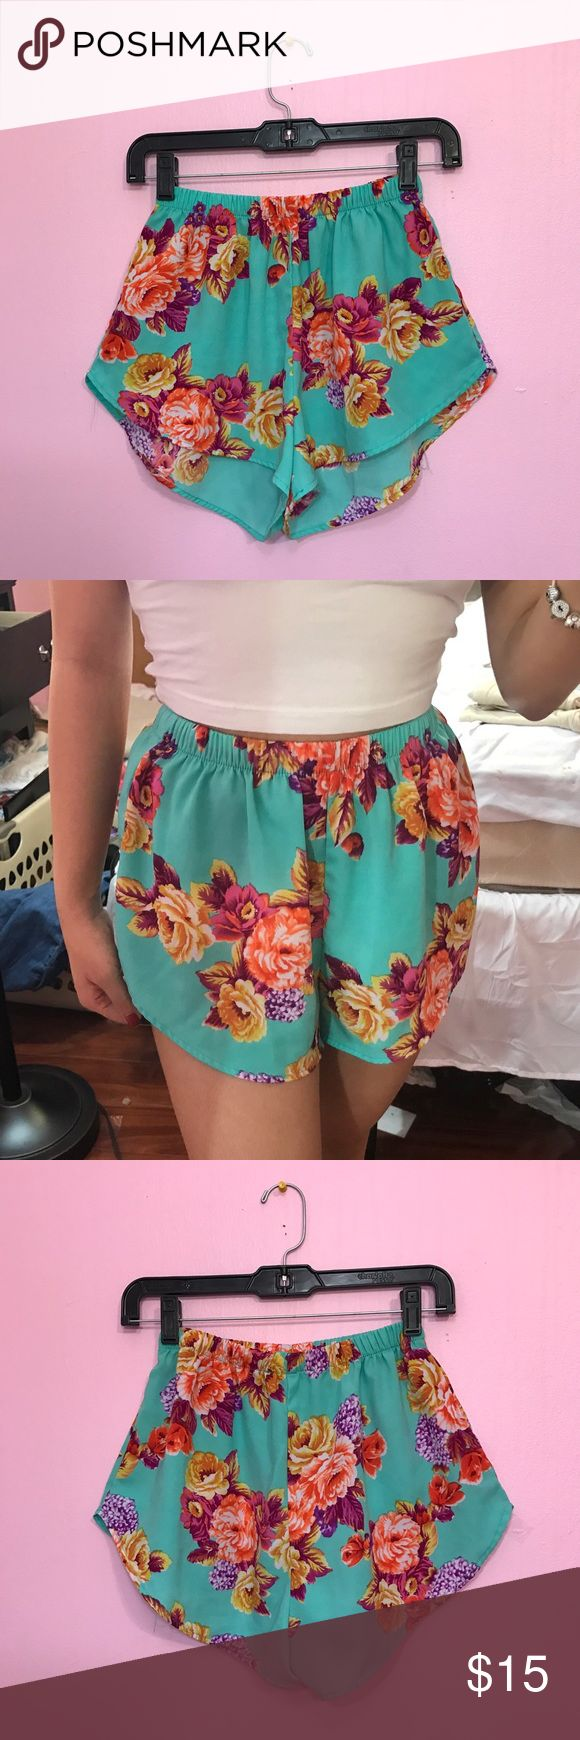 Floral Mint Shorts Worn a few times! •Size: S •Color: Mint •Chiffon material •Super cute! (No listed brand, only used for exposure) Fashion Nova Shorts